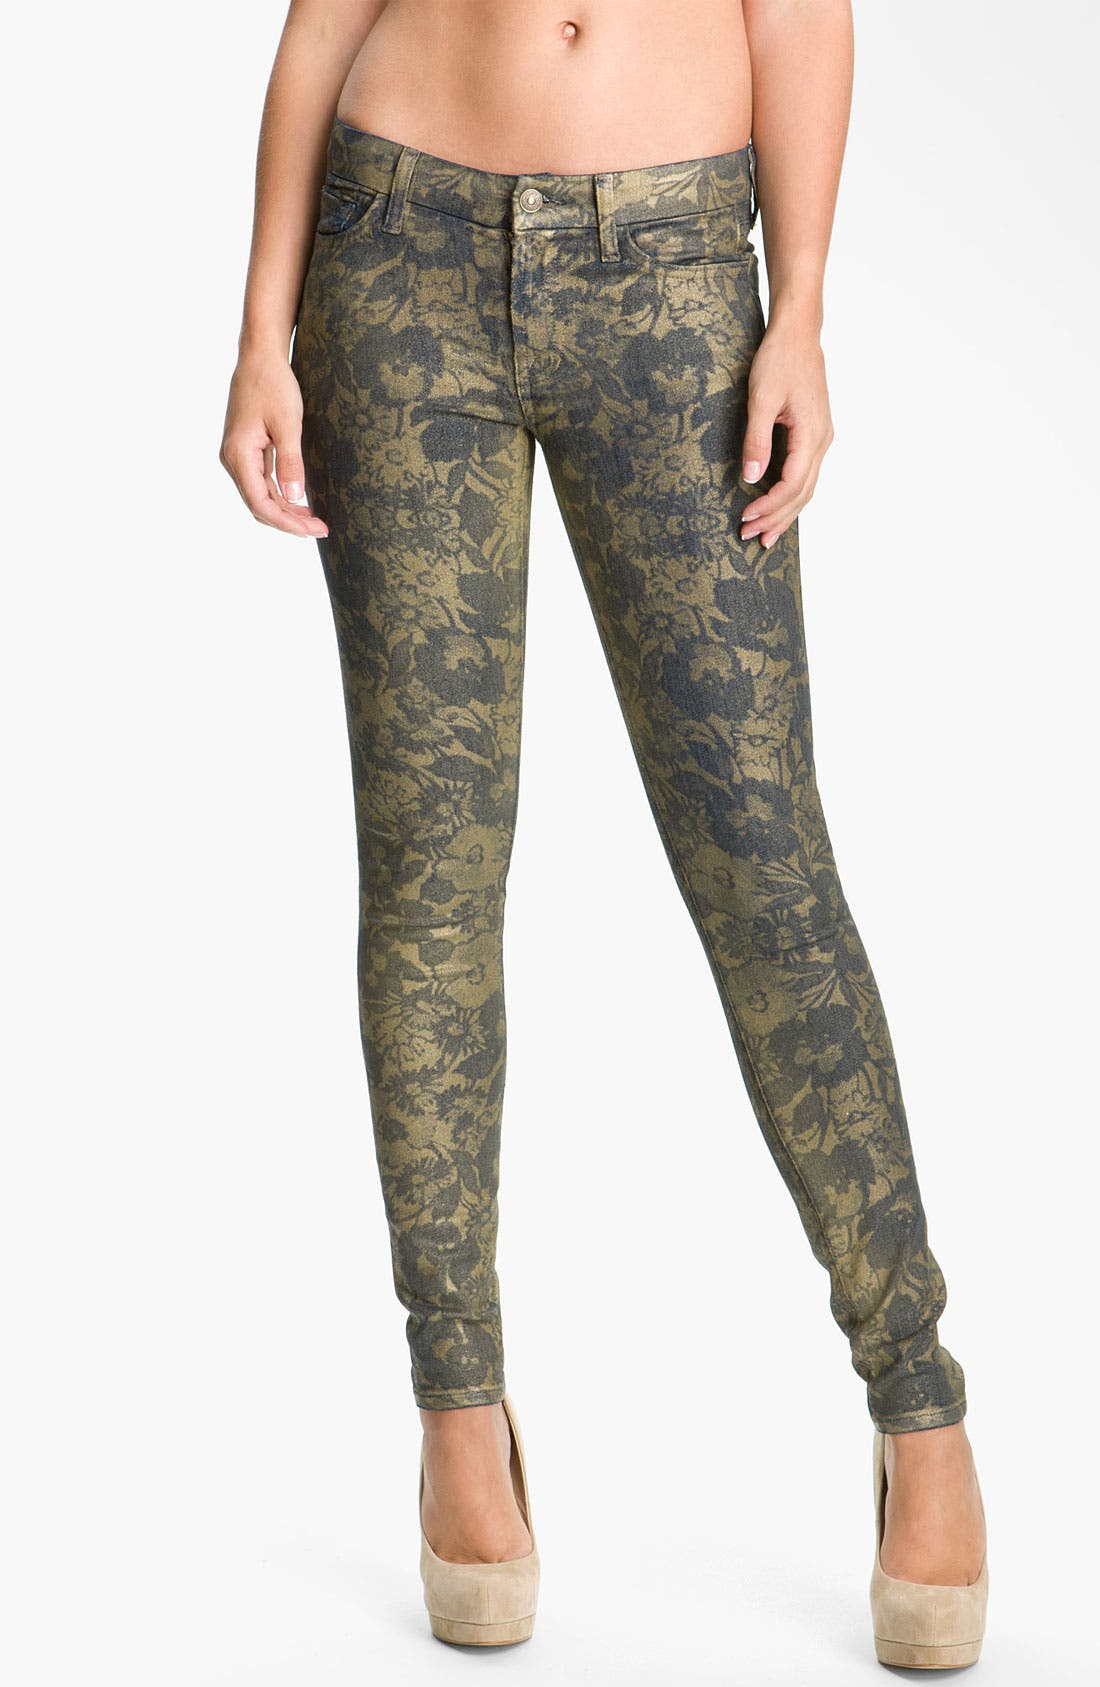 Alternate Image 1 Selected - 7 For All Mankind® 'The Skinny' Skinny Stretch Jeans (Laser Gold Foil)